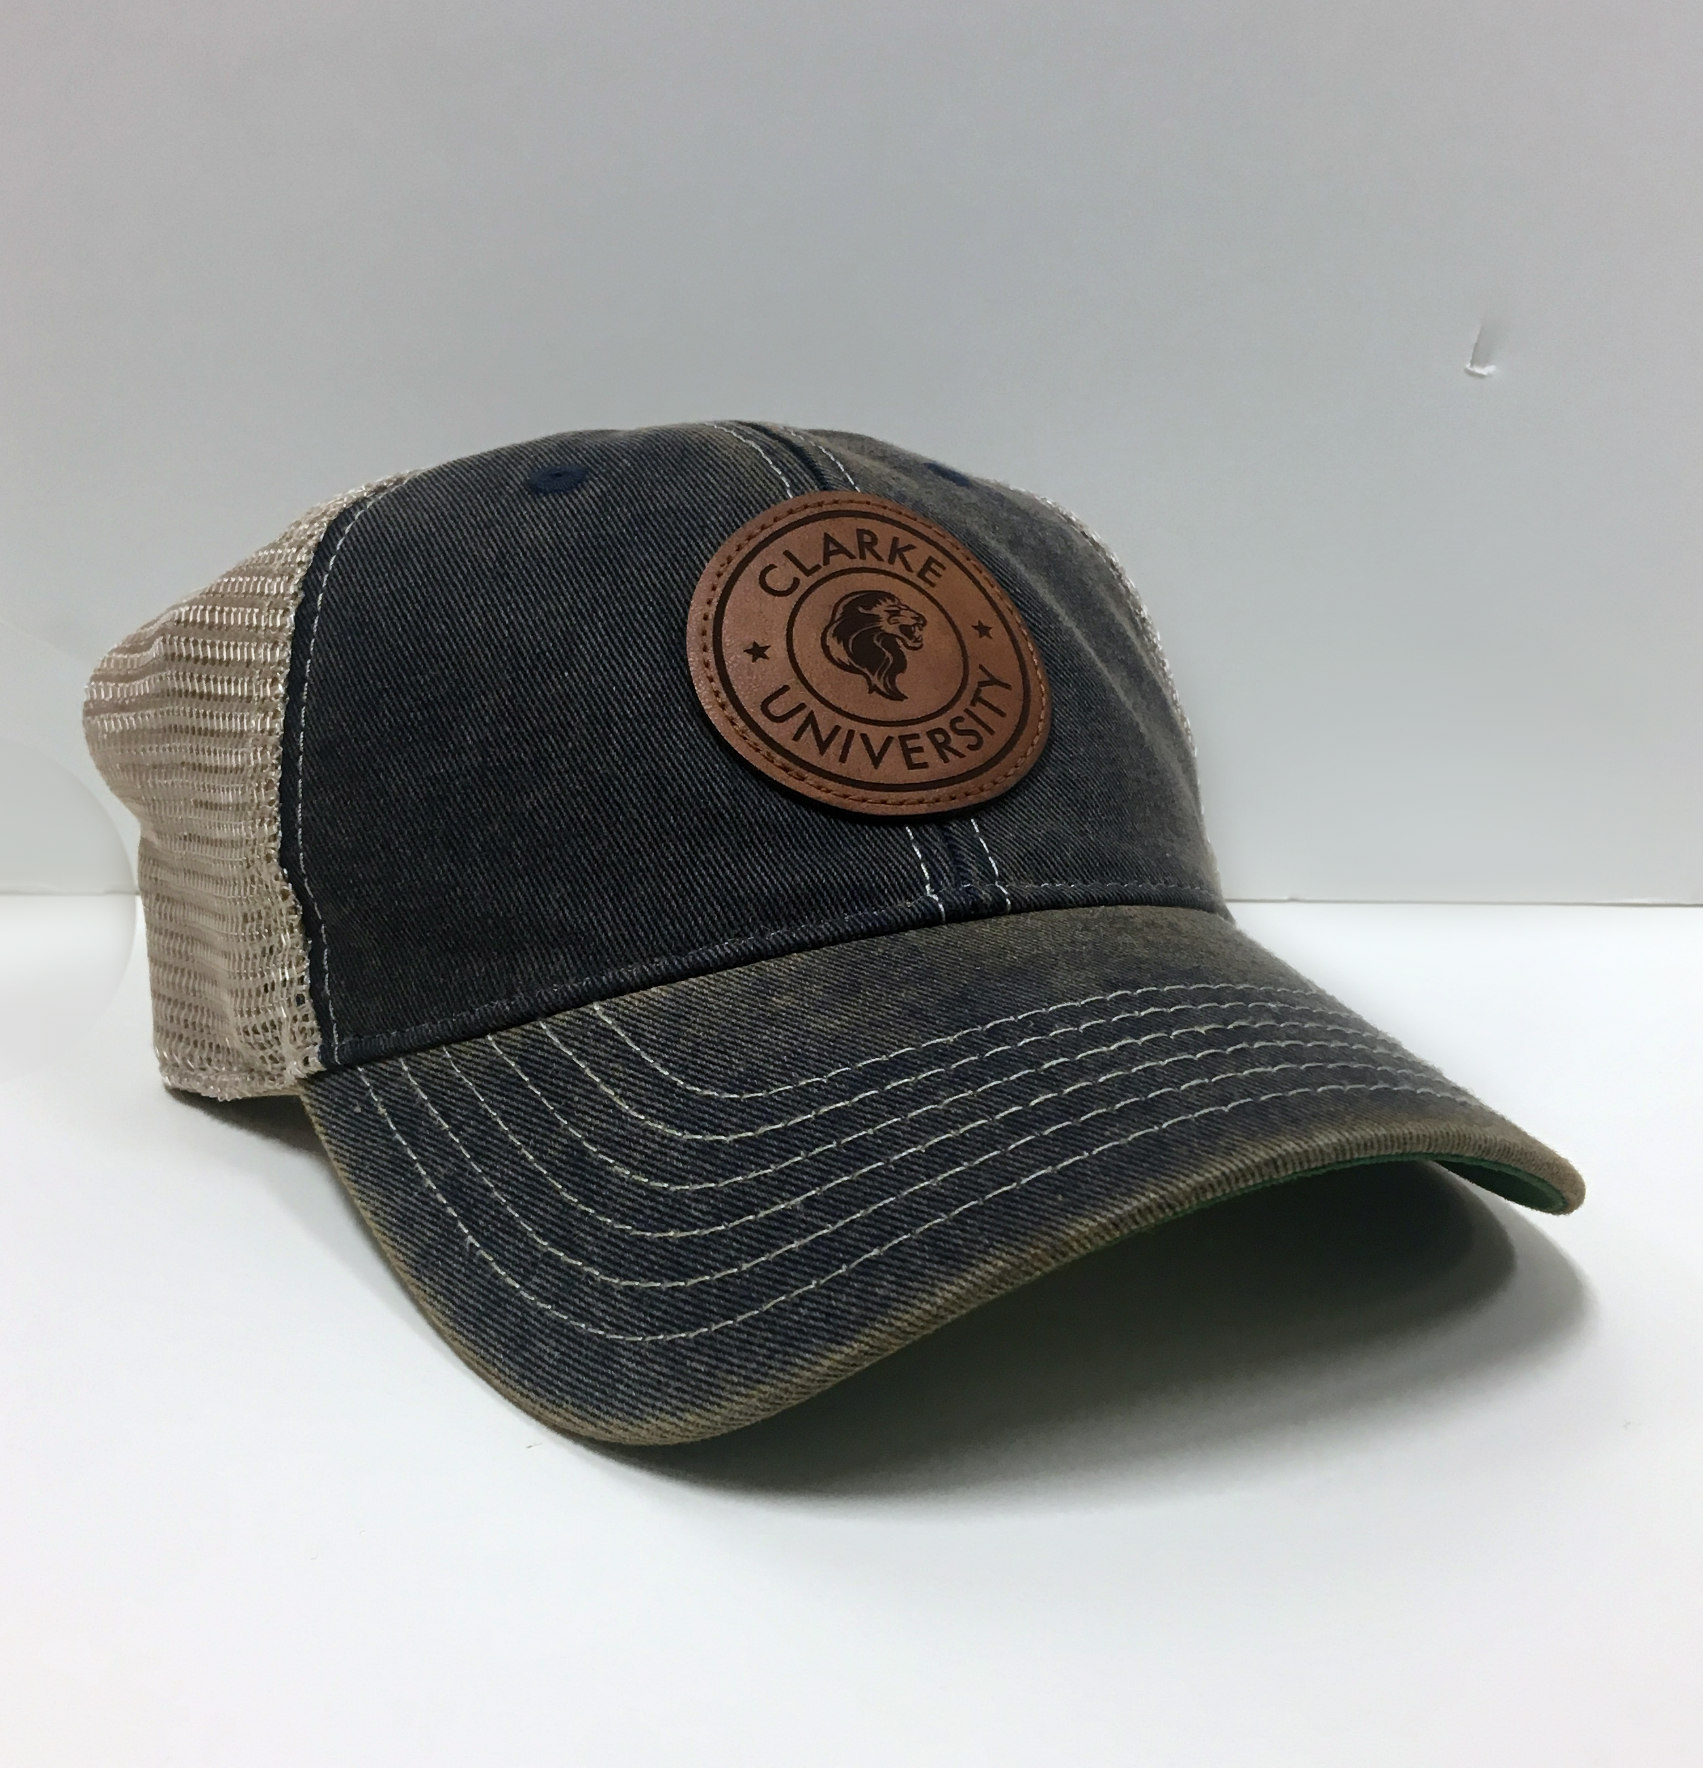 Image for the Old Favorite Trucker Hat w/Leather Patch product